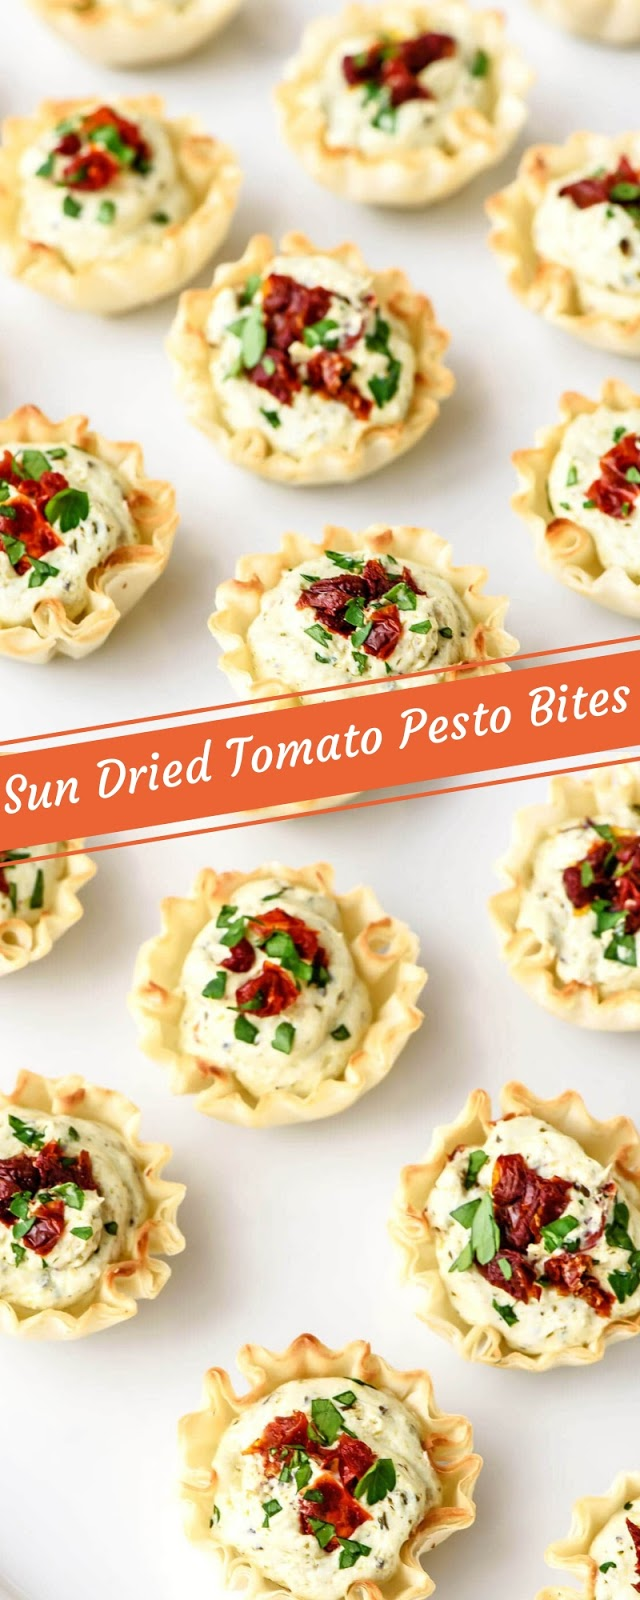 Sun Dried Tomato Pesto Bites